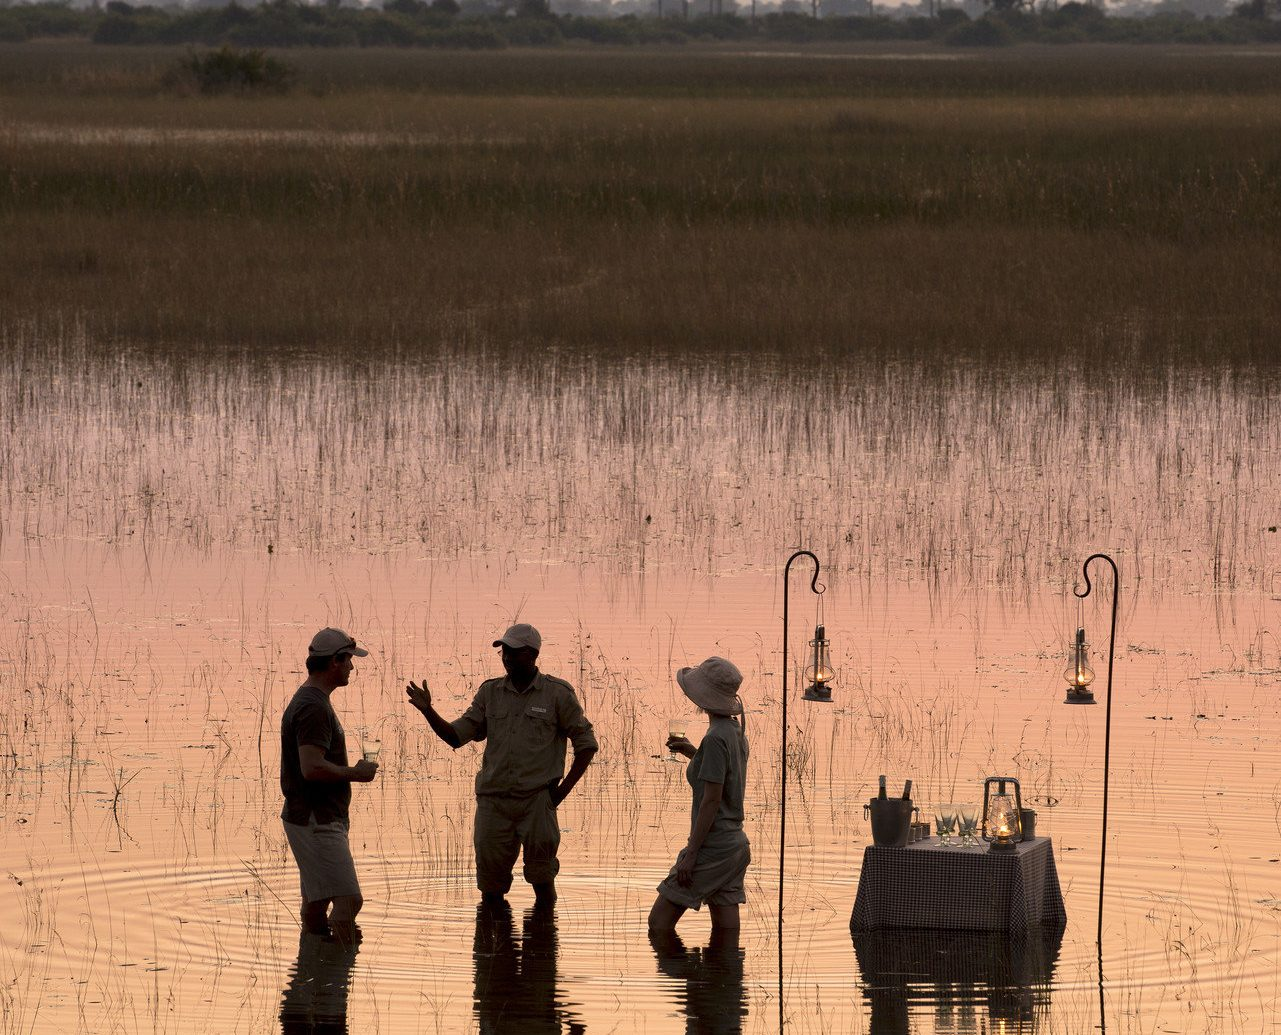 calm fisherman fishing golden hour grass Lake Luxury Nature Outdoor Activities outdoor dining Outdoors people reflection remote River Safari serene silhouette sunrise Sunset Trip Ideas outdoor atmospheric phenomenon natural environment morning dawn wetland evening